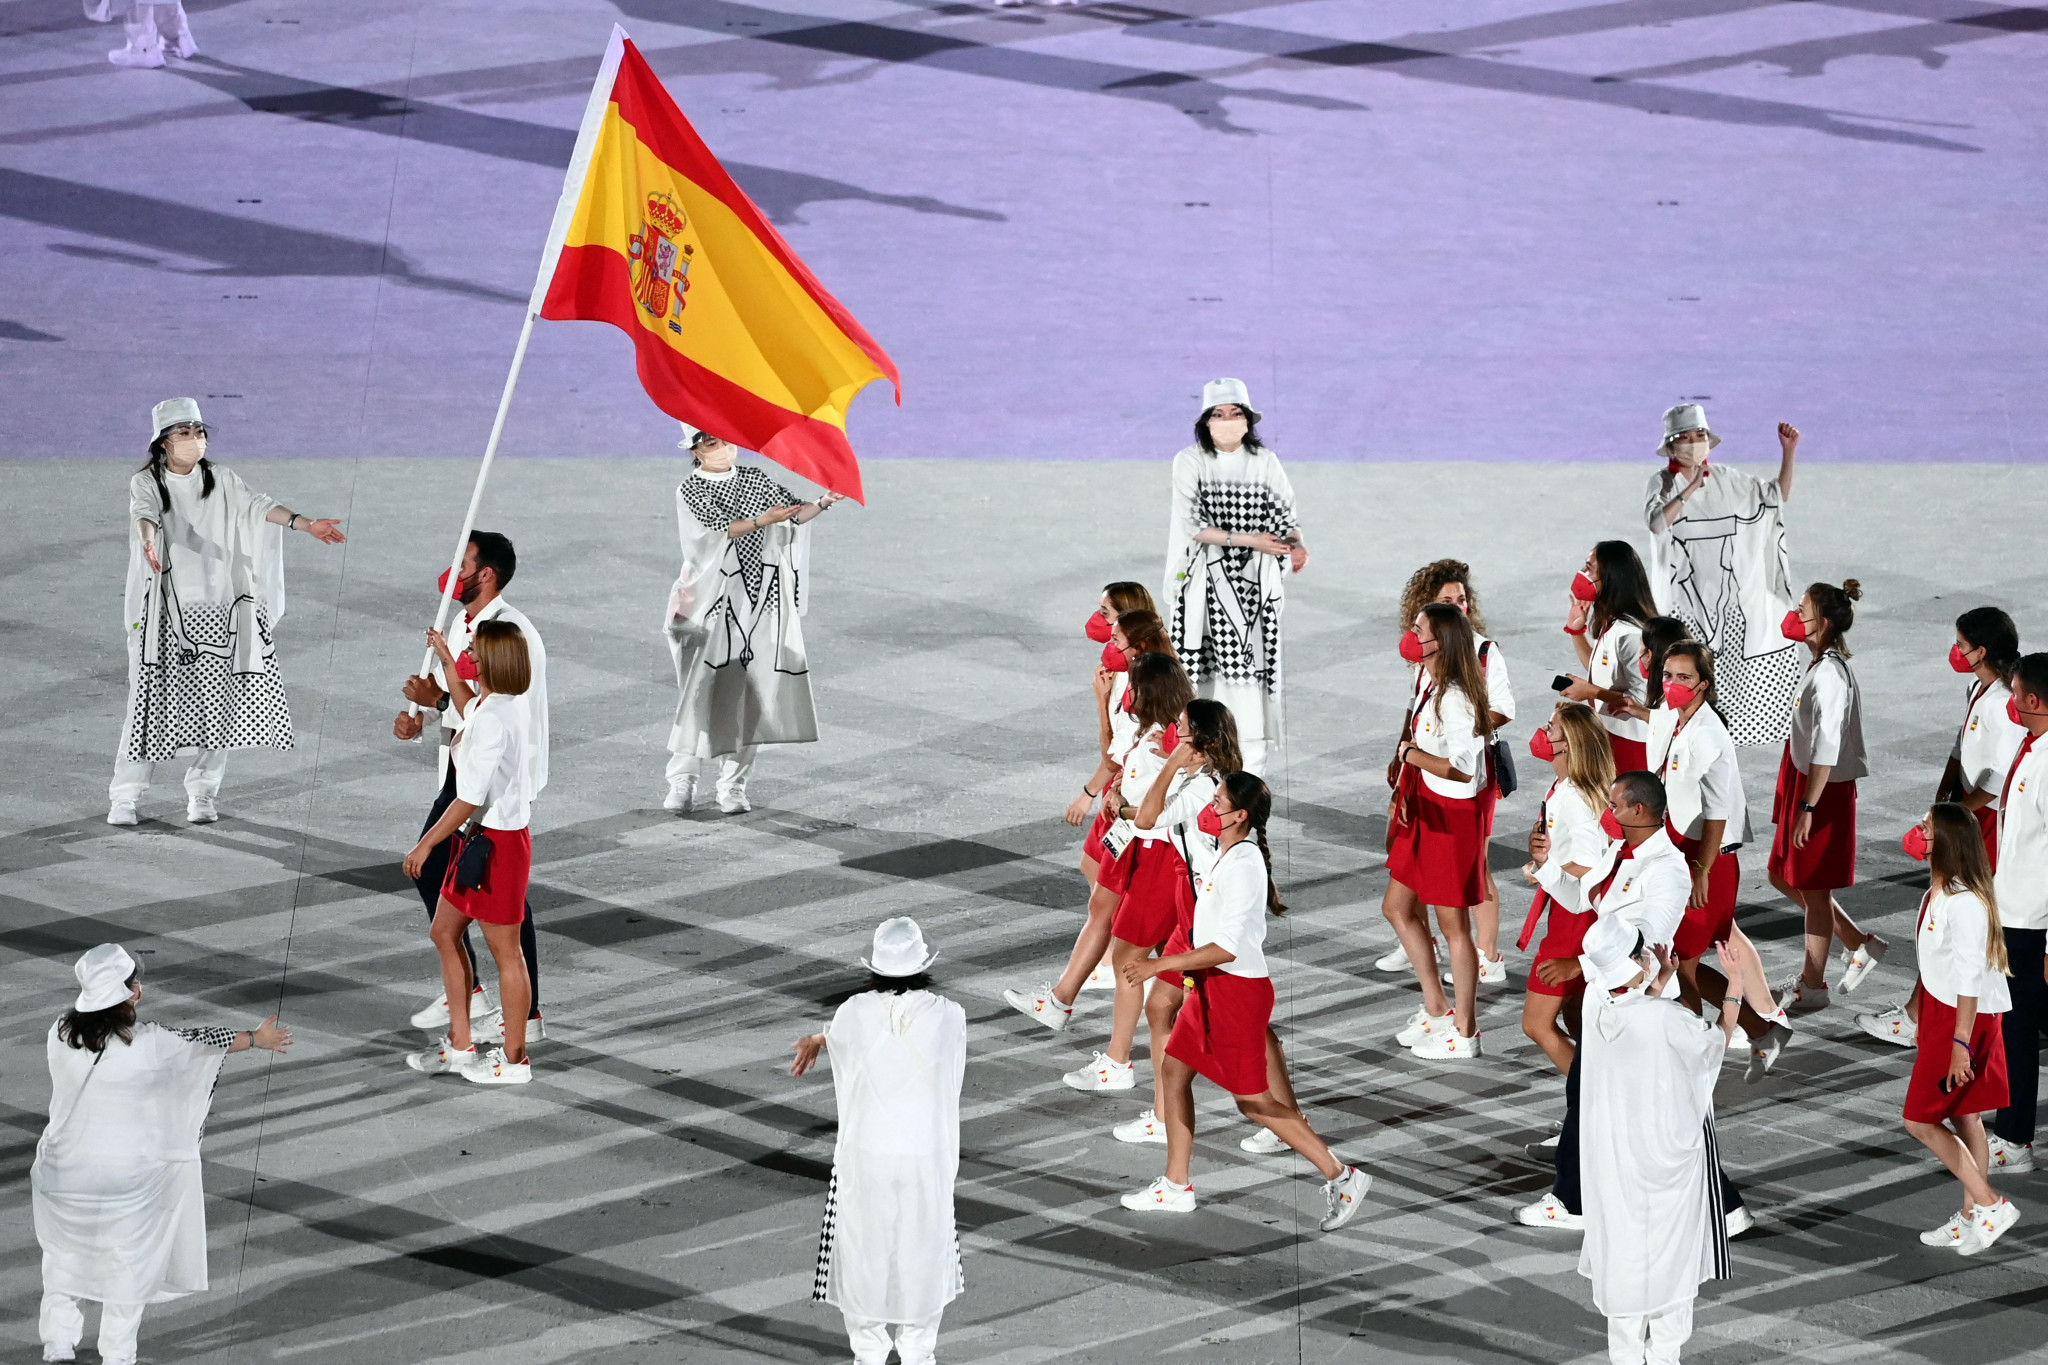 Confusion over Madrid Olympic bid as Mayor shuts down claim of 2036 candidacy